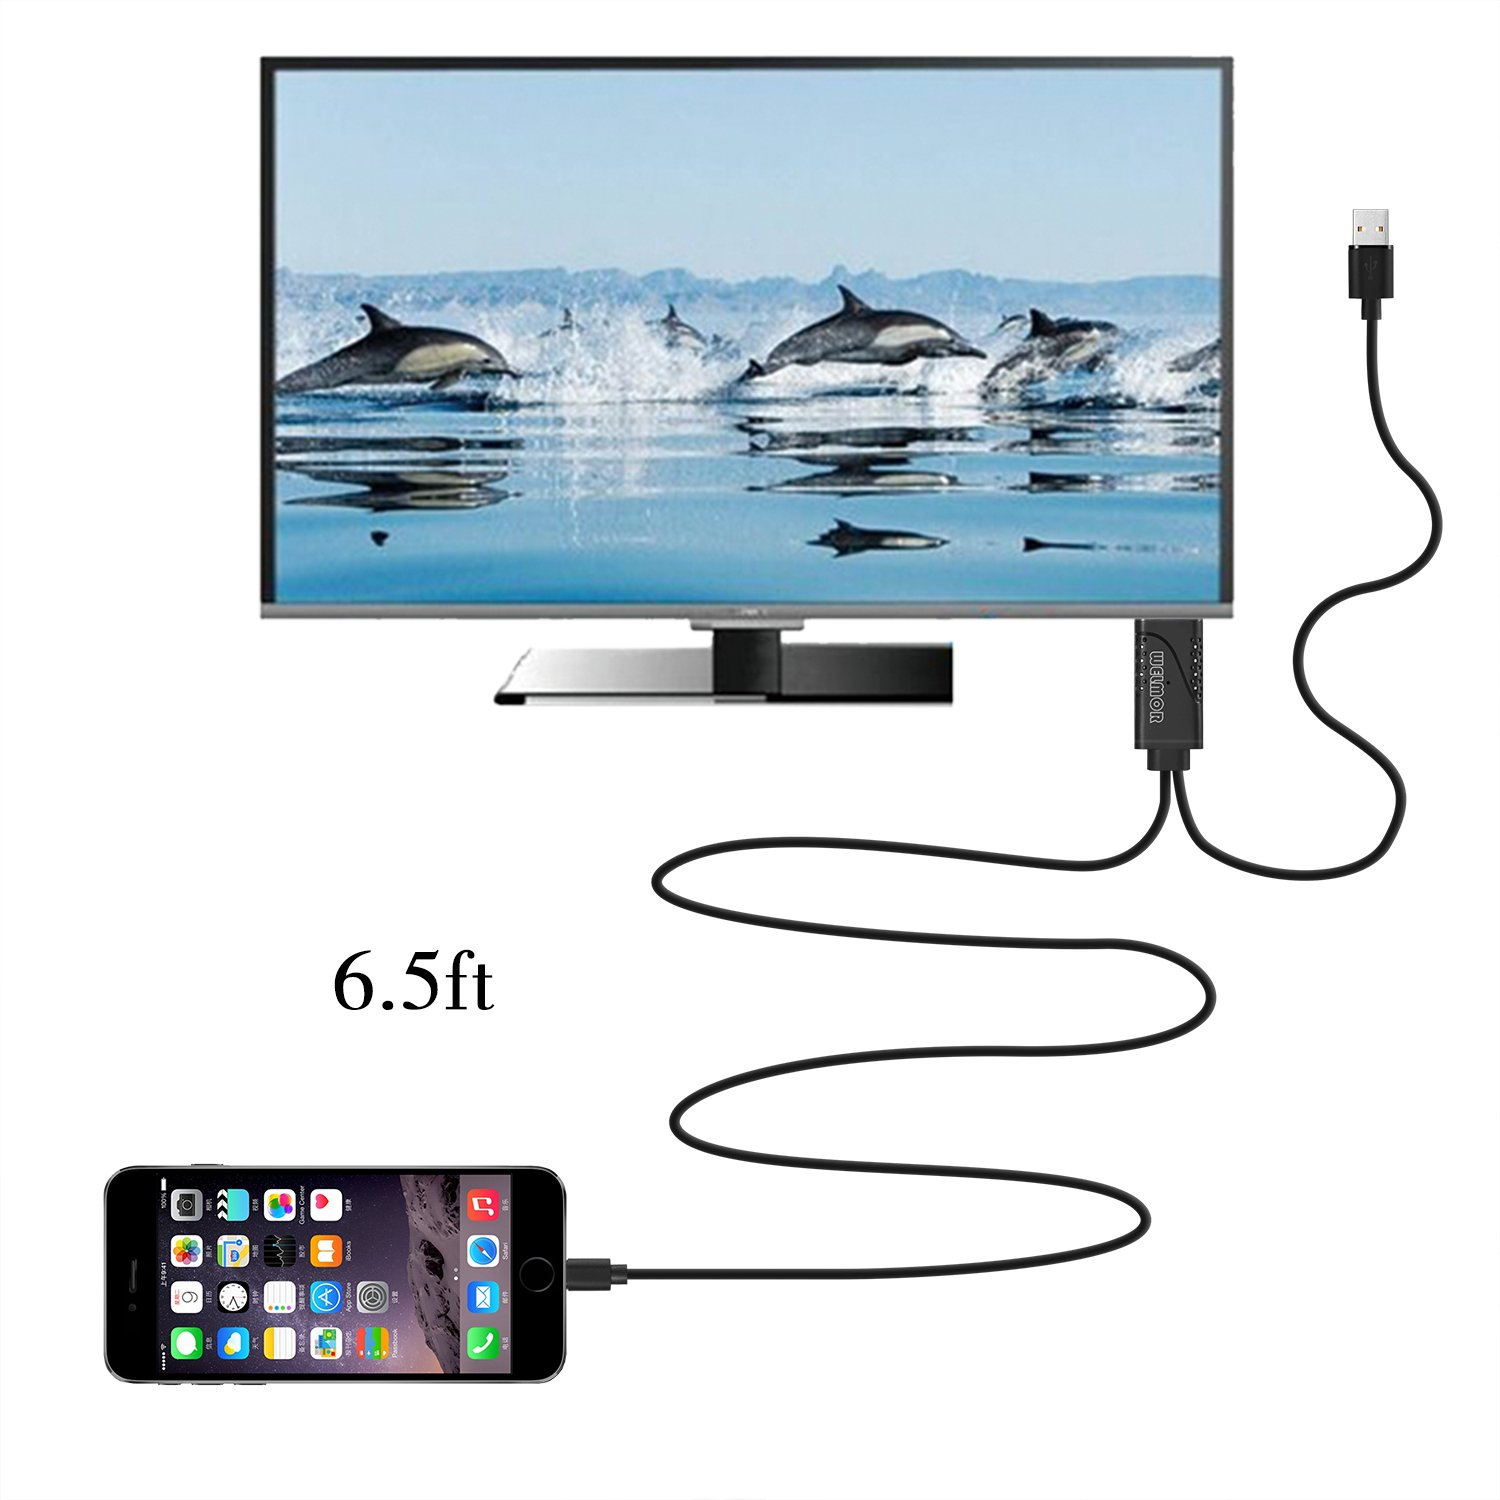 Welmor 6.5ft HDMI Adapter Cable,High Speed HDMI 1080P HDTV Adapter Cord Compatible with iPhone X/8/7/6/plus,iPad,iPod to HDMI Cable ,Plug and Play(Black) by Welmor (Image #6)